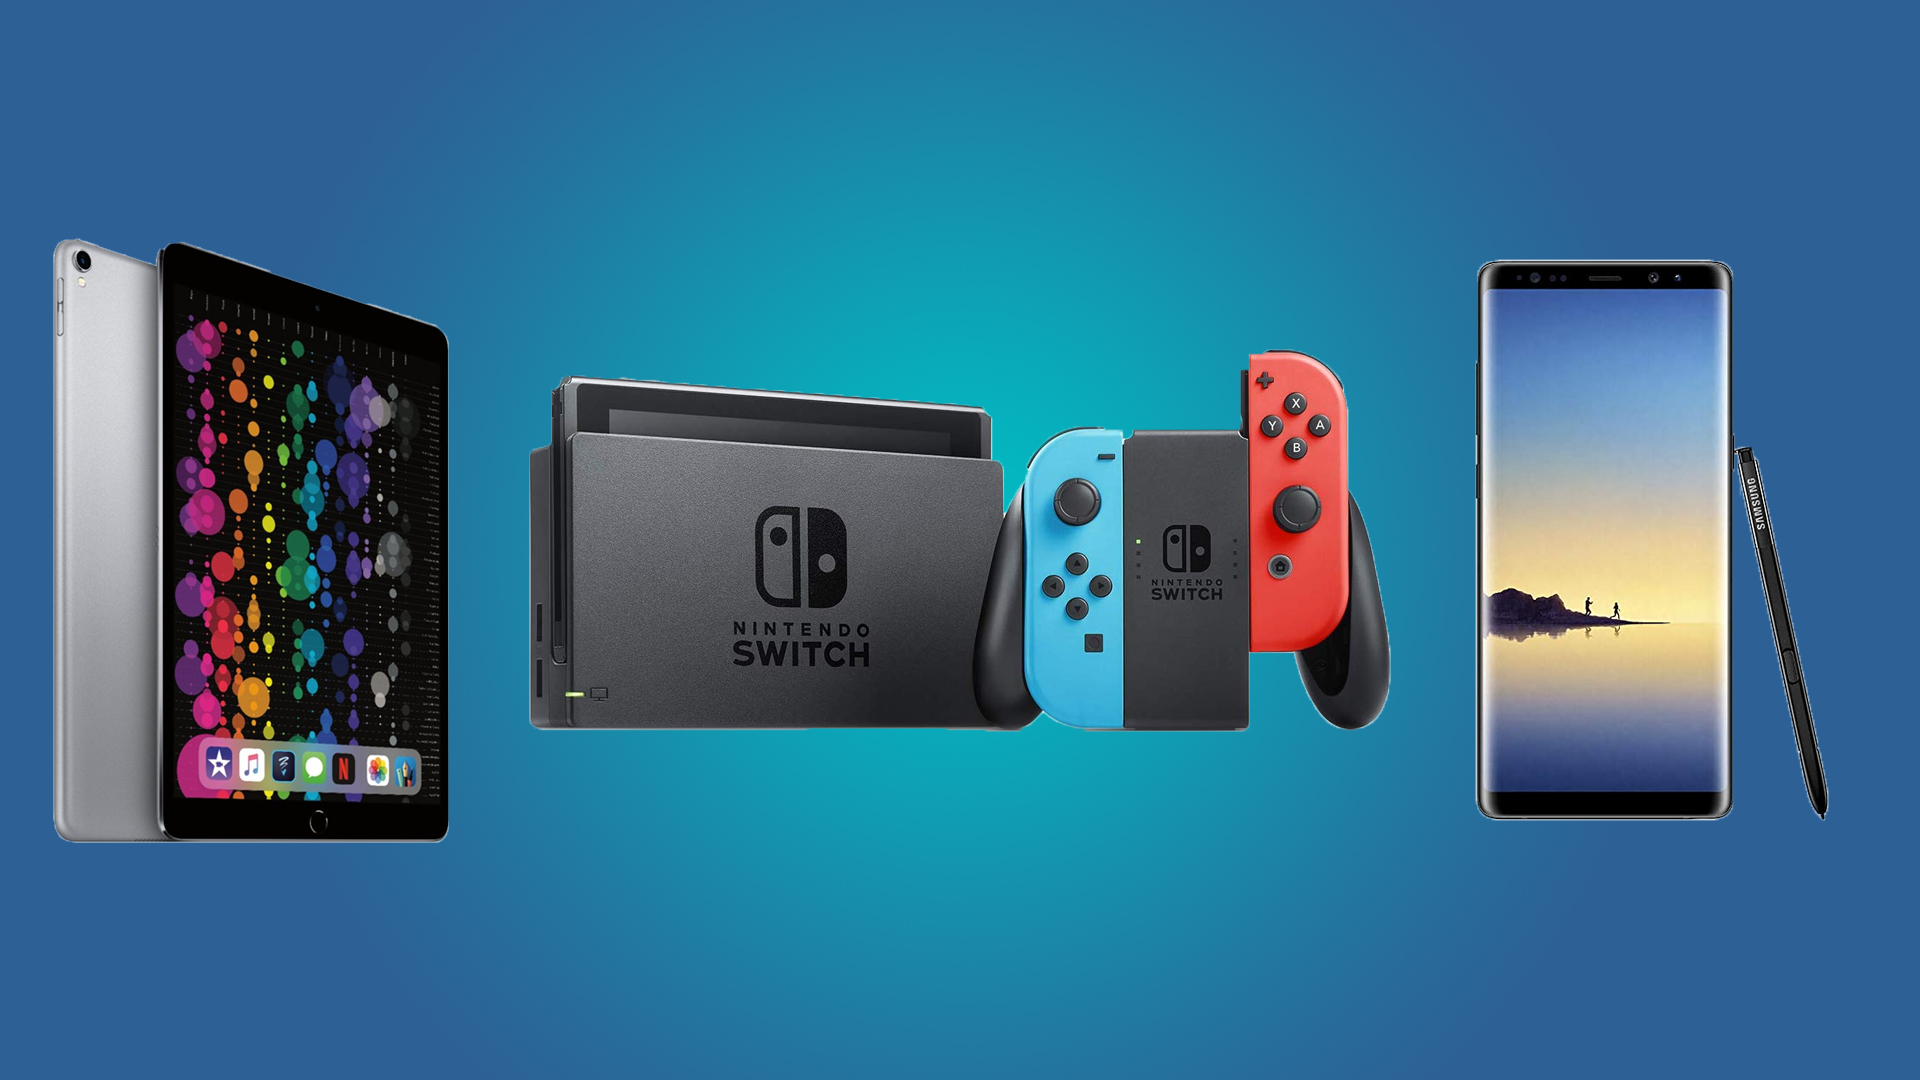 Daily Deals Nintendo Switch Consoles and Games, the iPad